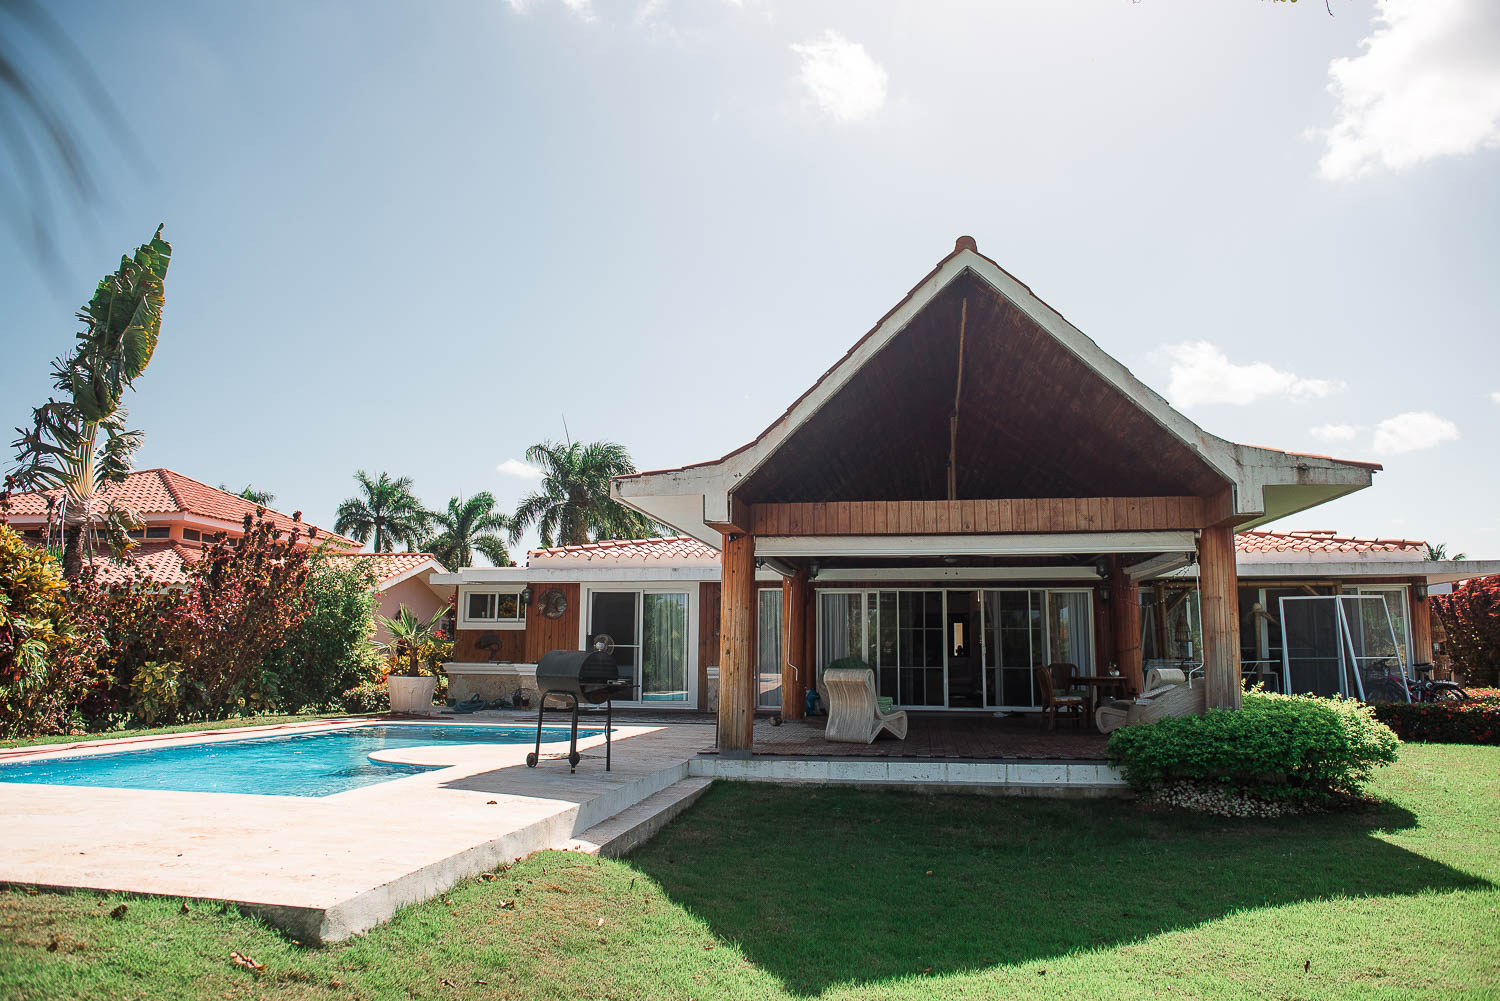 3 Bedrooms Villa with Private Pool in Cocotal (249-C)